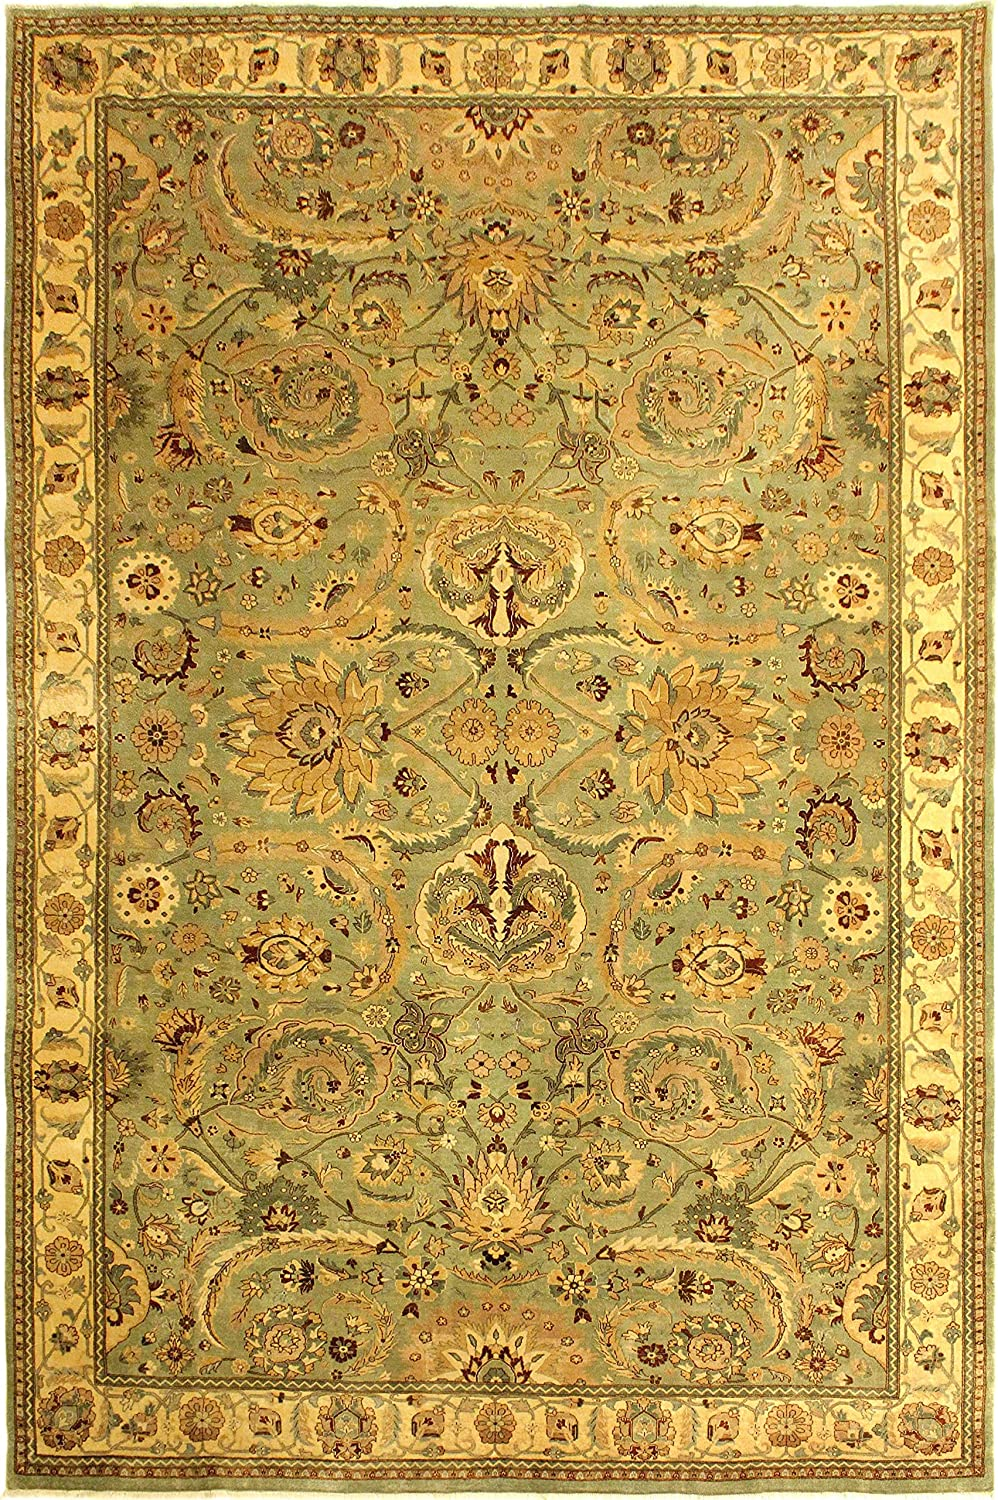 Arshs Turkish Knotted Jaime Lt. Green Ivory Louisville-Jefferson County Mall Rug Phoenix Mall 10'0 13' x Wool